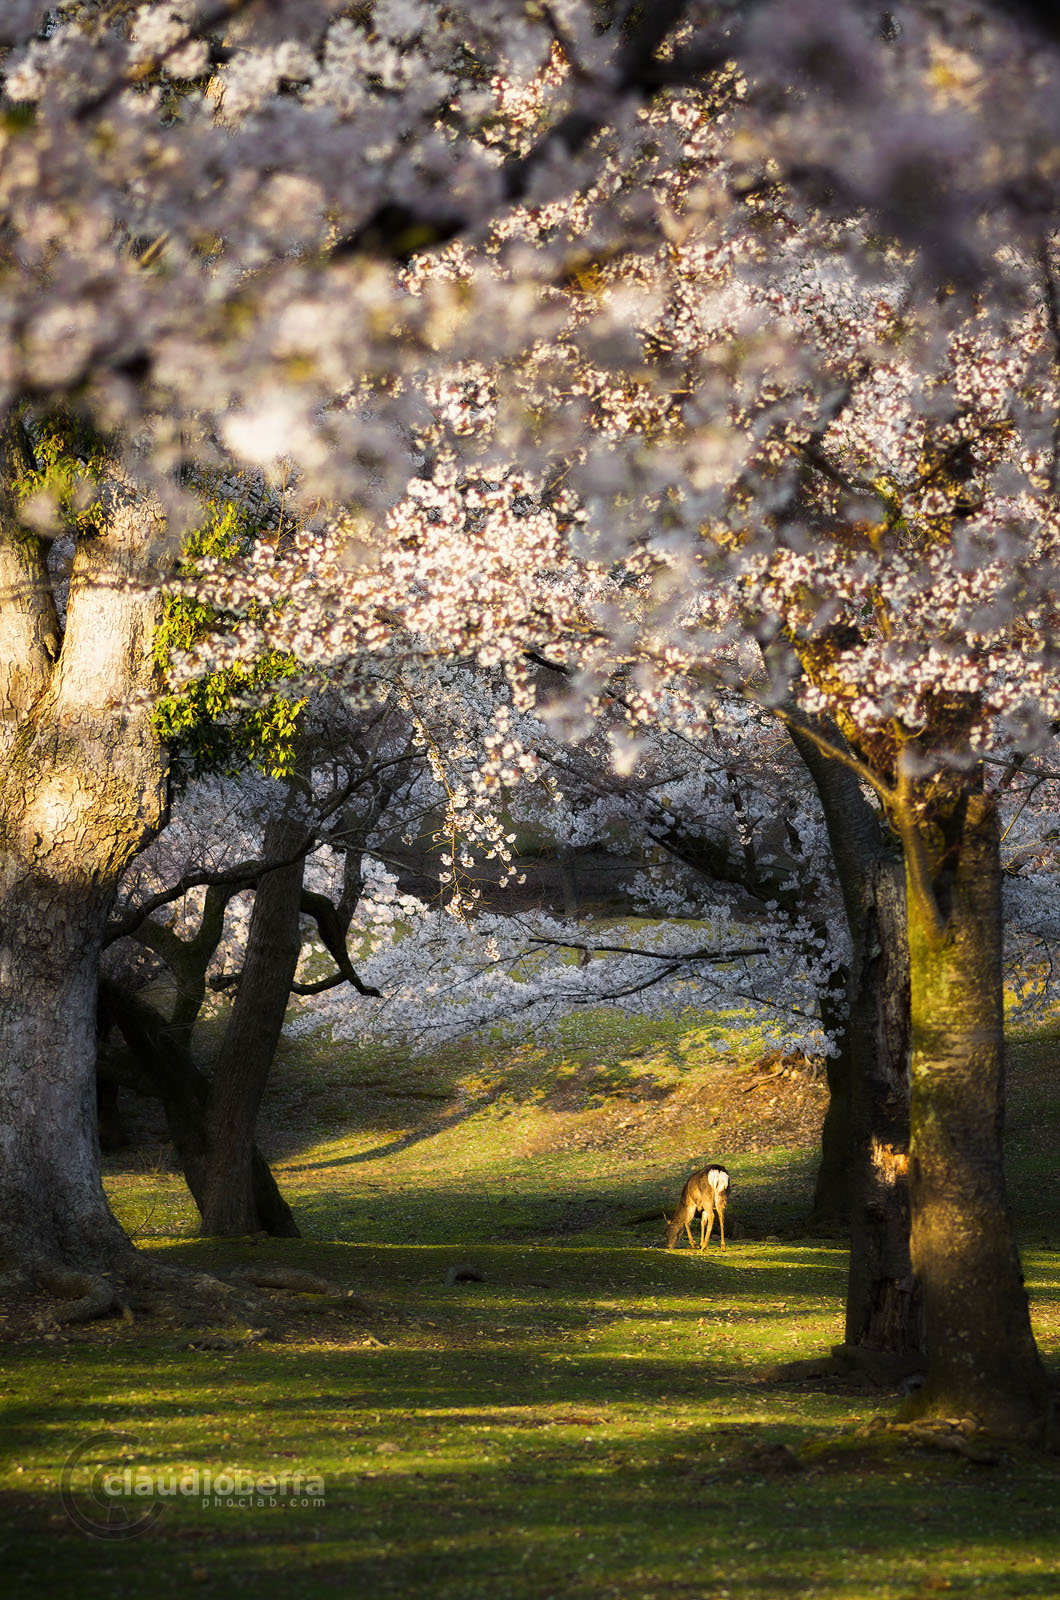 Japan, Spring, Magic, Forest, Cherry, Sakura, Blossom, Tree, Light, Deer, Nature, Spring, Pentax